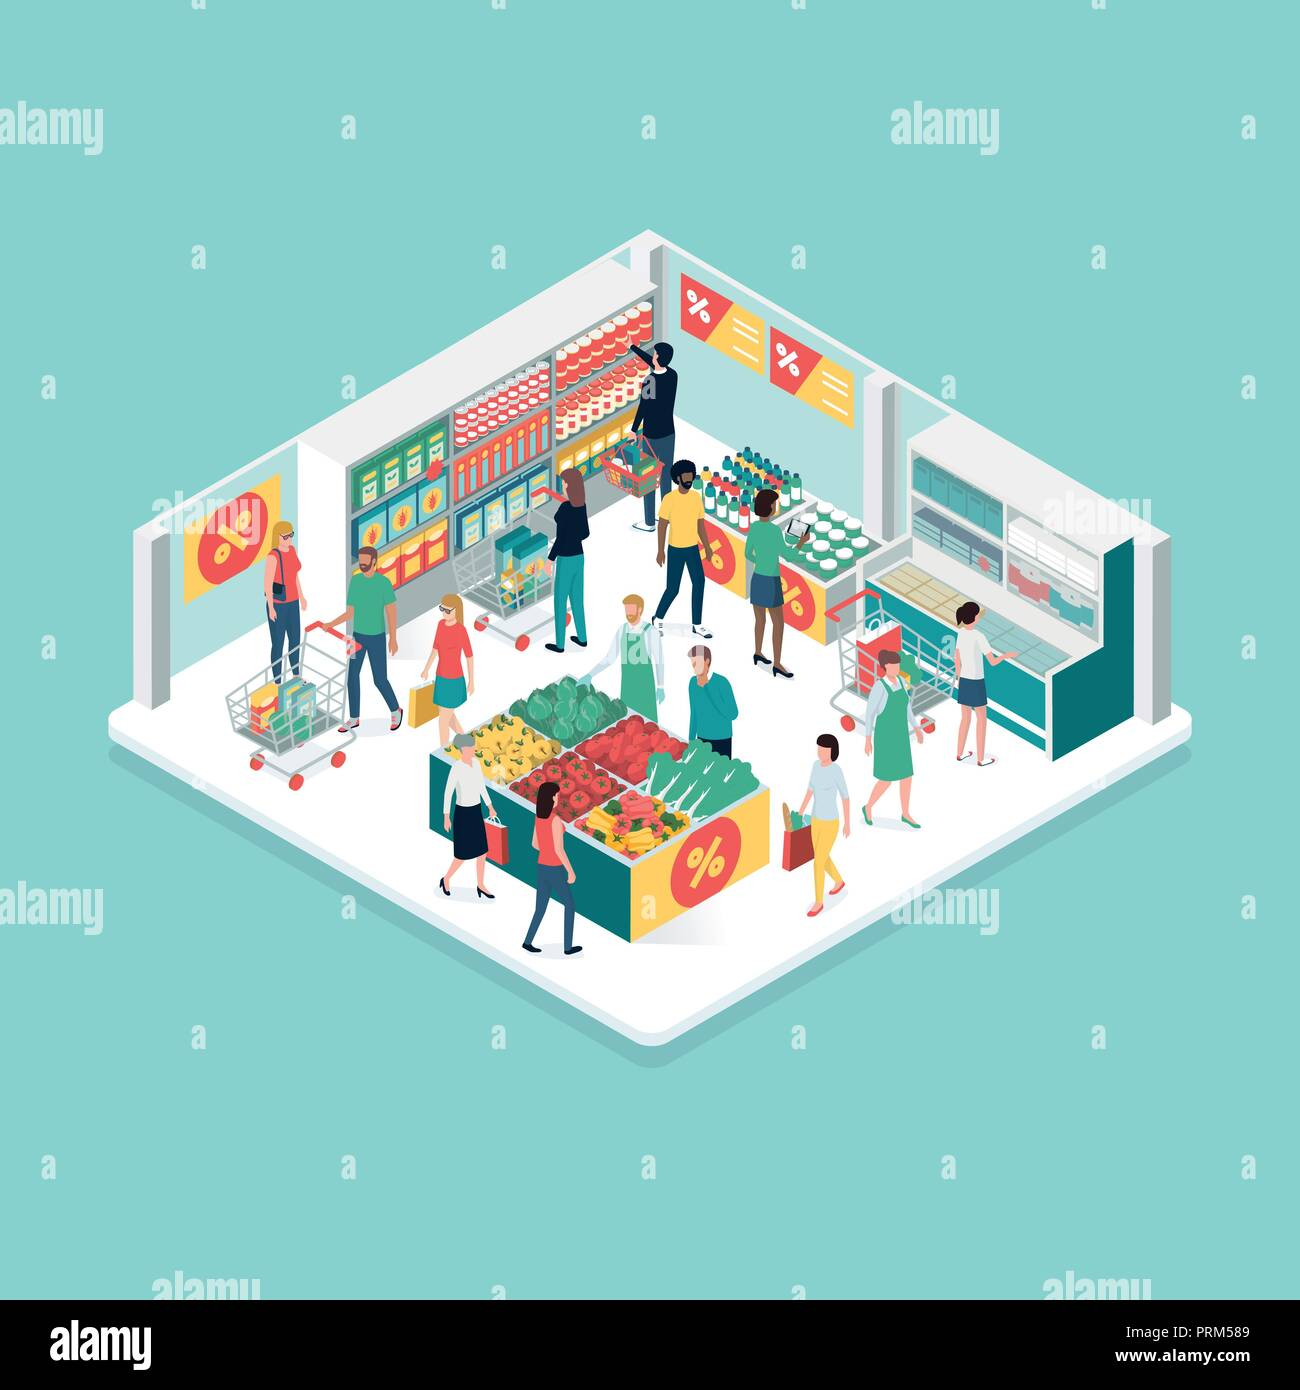 People doing grocery shopping at the supermarket, isometric shop interior: discounts and retail concept - Stock Vector